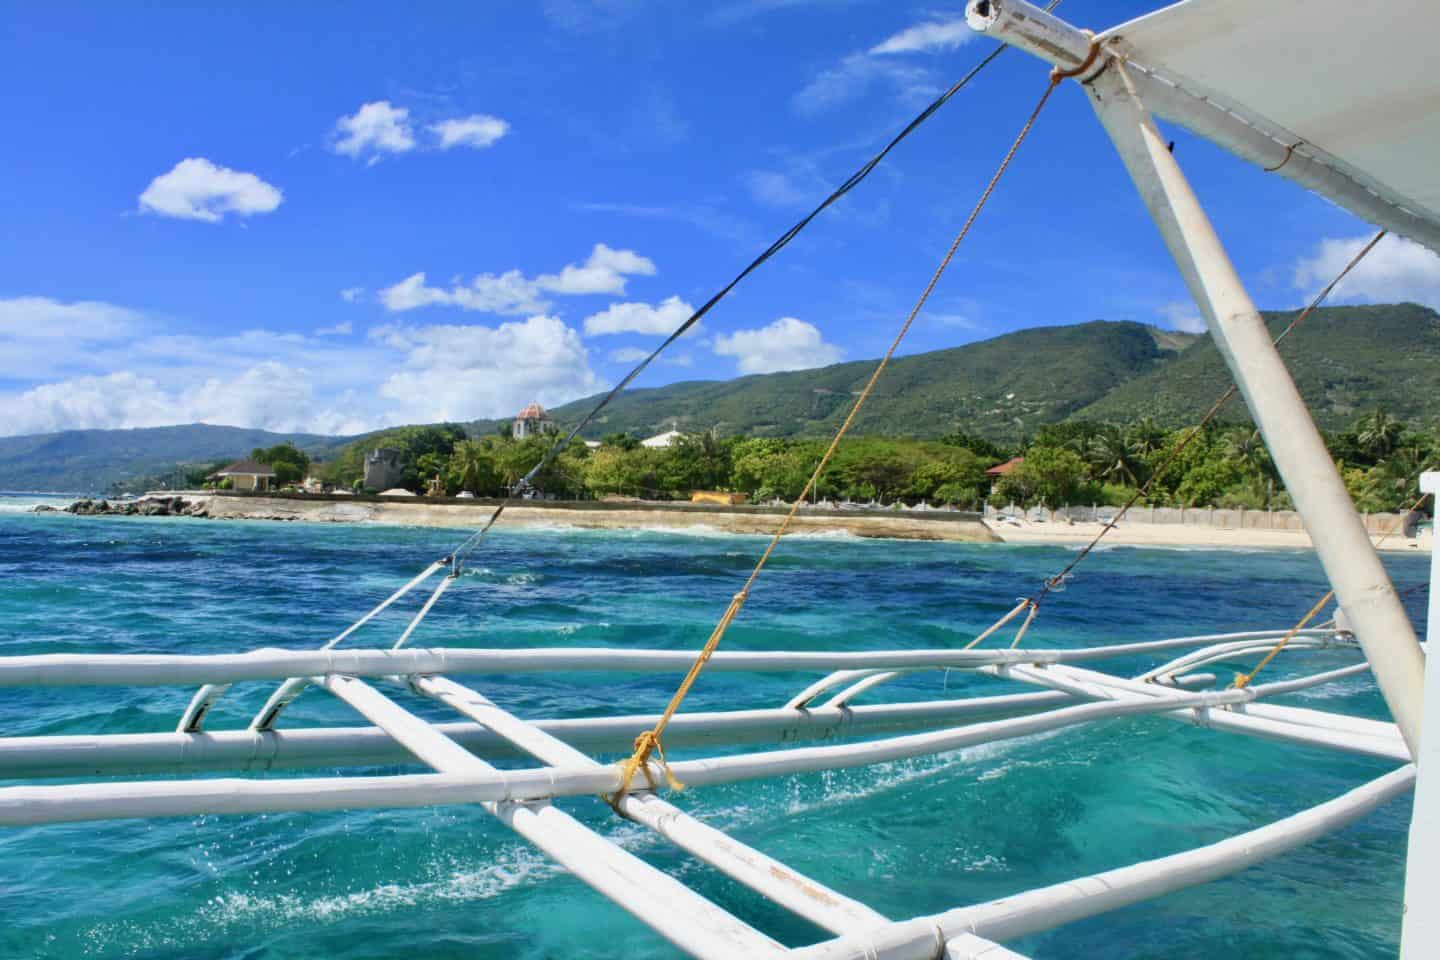 Sailing from Oslob to Panglao, Bohol, Philippines